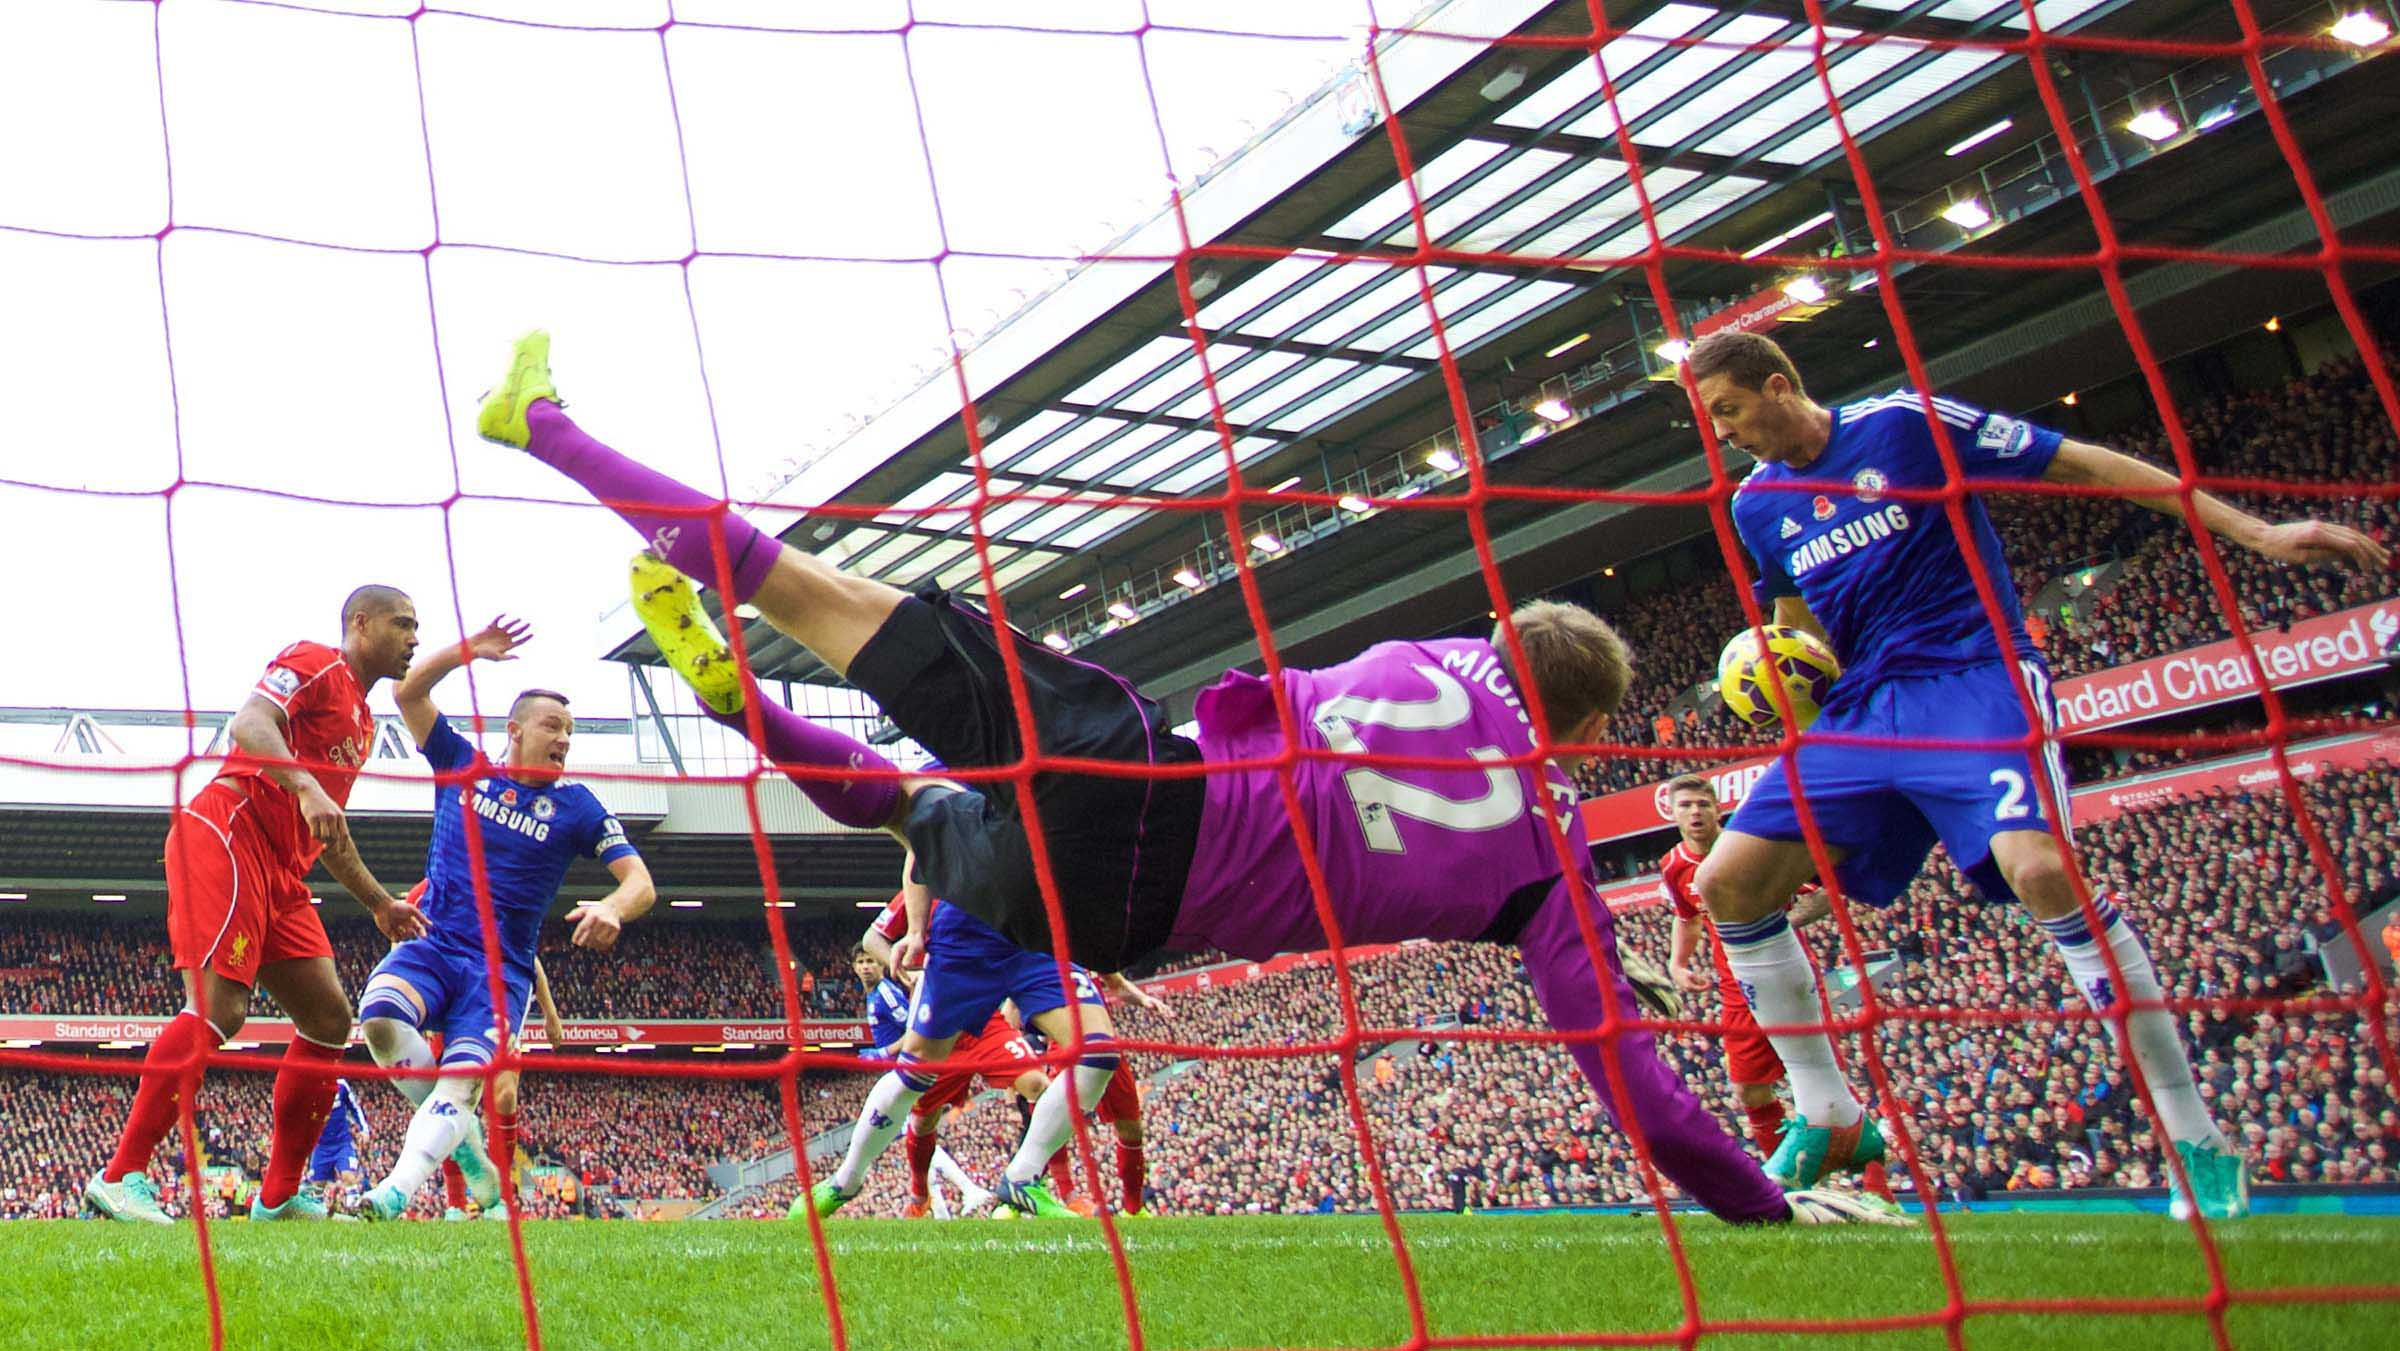 NEIL ATKINSON'S MATCH REVIEW: LIVERPOOL 1 CHELSEA 2